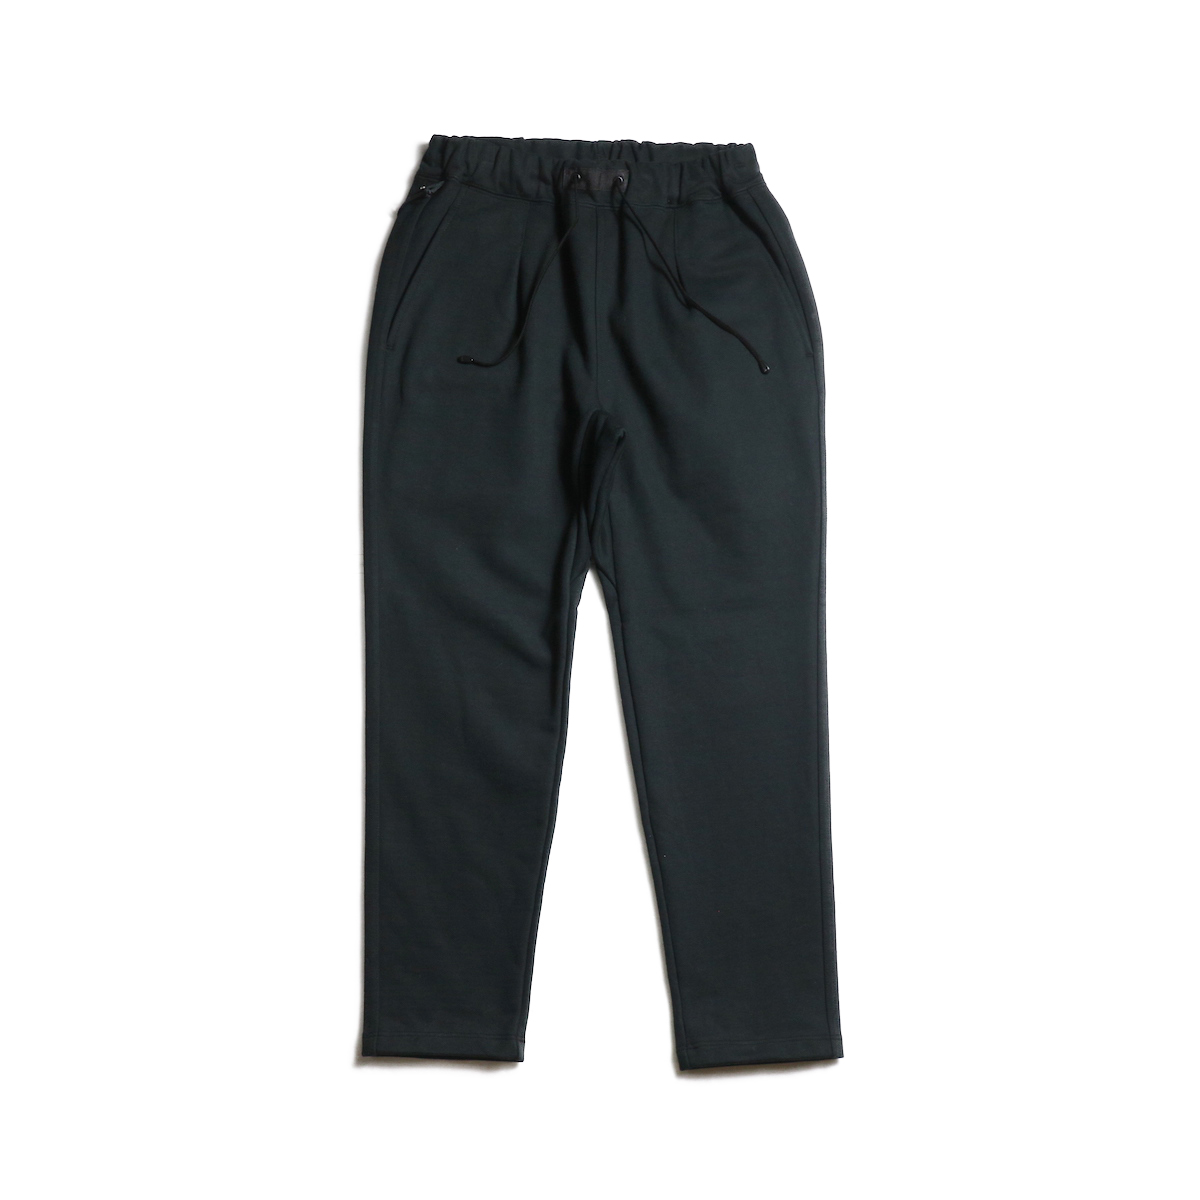 CURLY / BROMLEY EZ TROUSERS (Black)正面